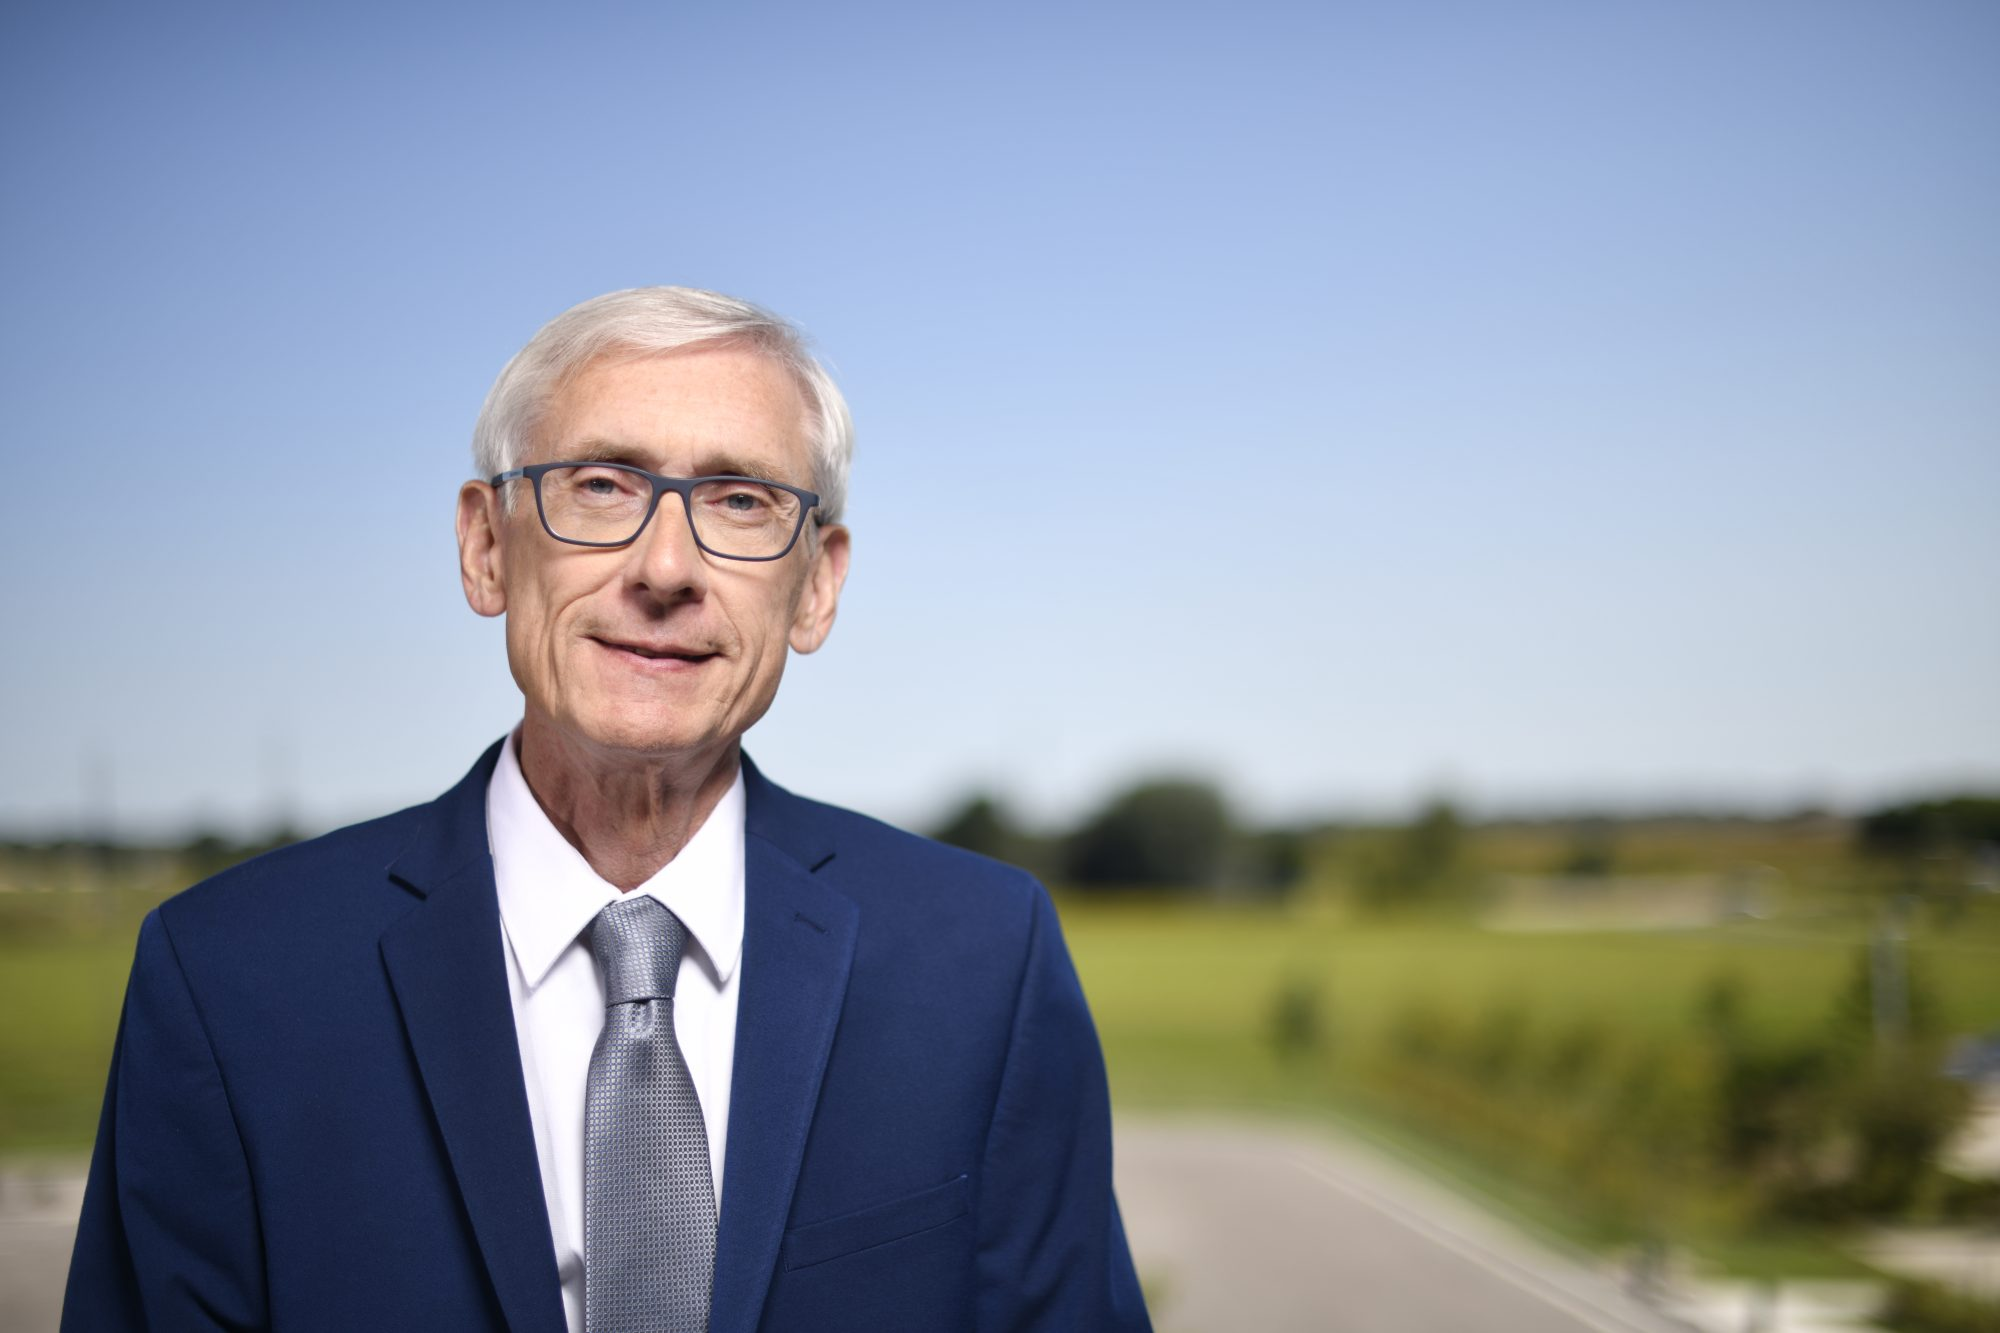 Gov. Evers Takes Action on Pardon Advisory Board Recommendations